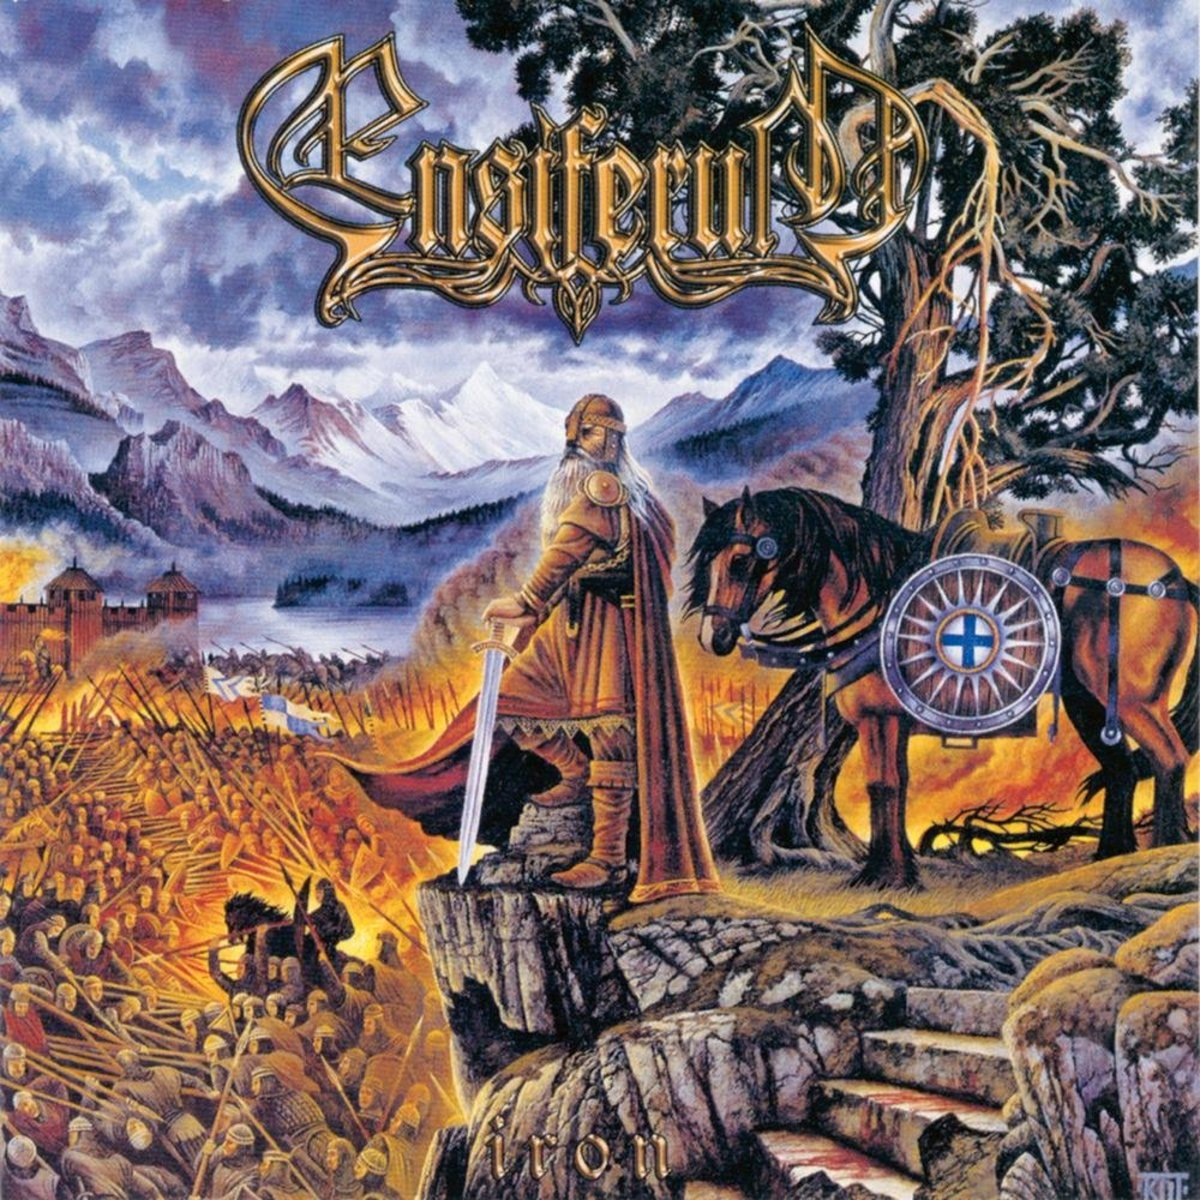 The front album cover depicts a Viking warrior as he stands with his sword in hand confidently looking down at the mass of warriors below.